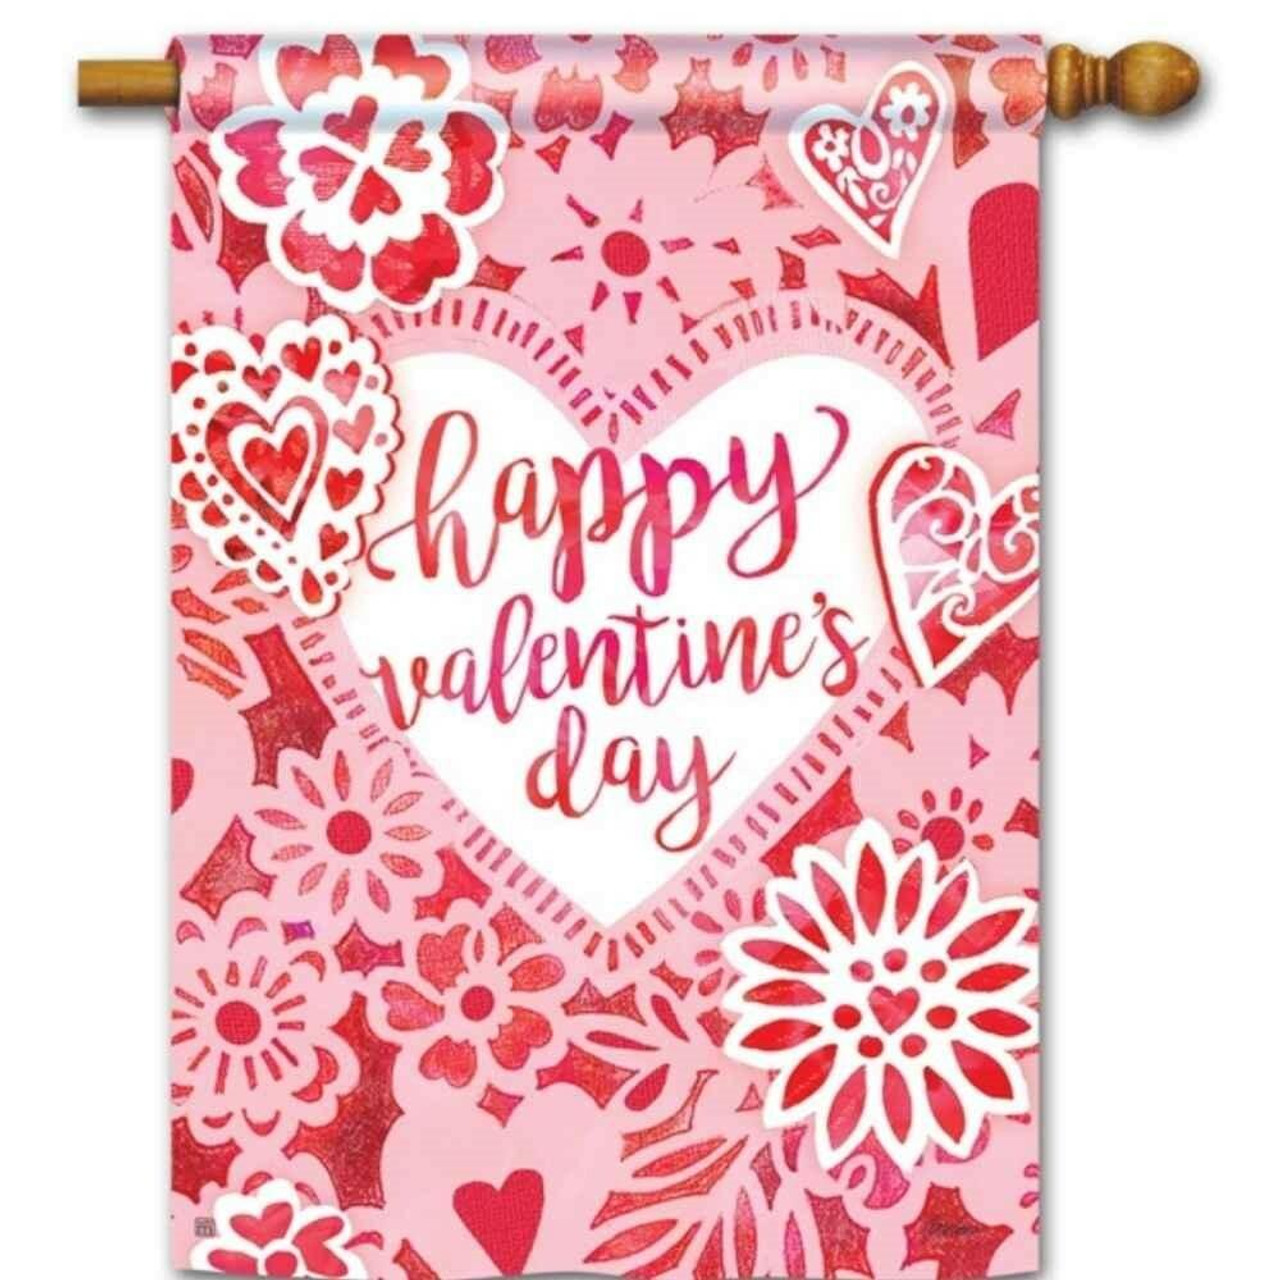 This Valentine Lace House flag has a pink background with red and white hearts and a big white heart in the center with the words Happy Valentine's Day in red lettering